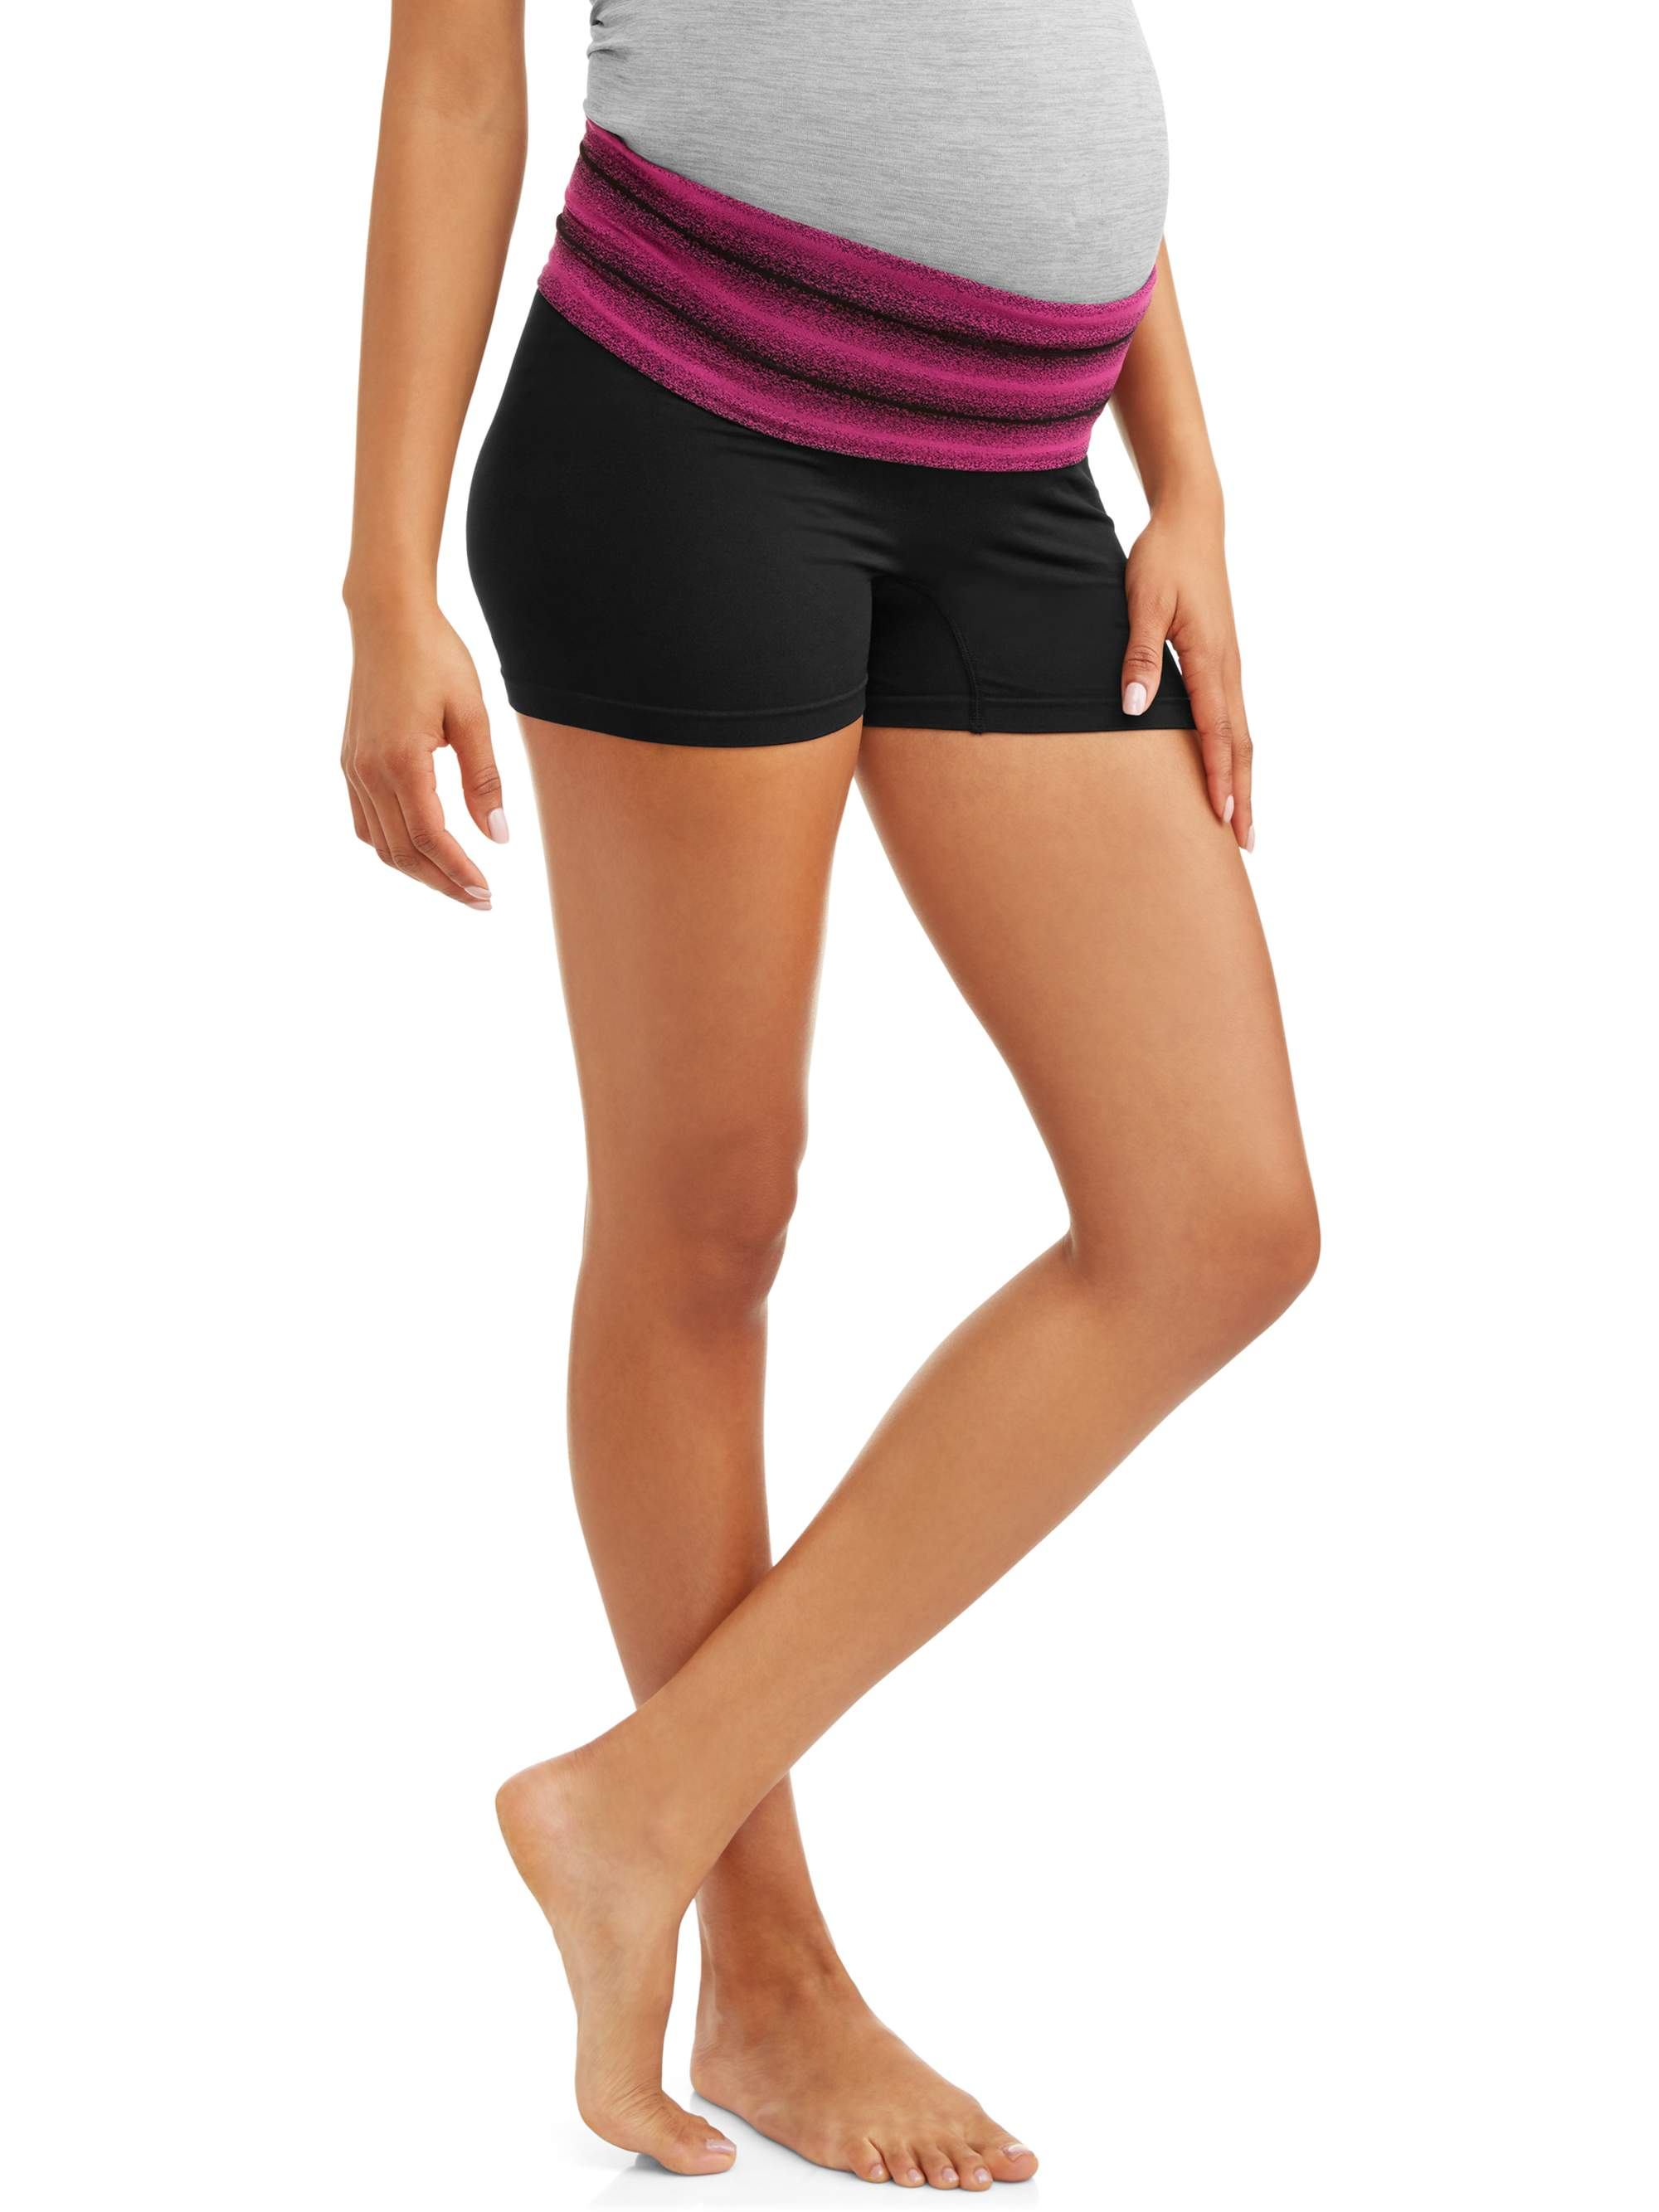 Dynabelly Maternity Seamless Yoga/Activewear Over Or Under Belly Short